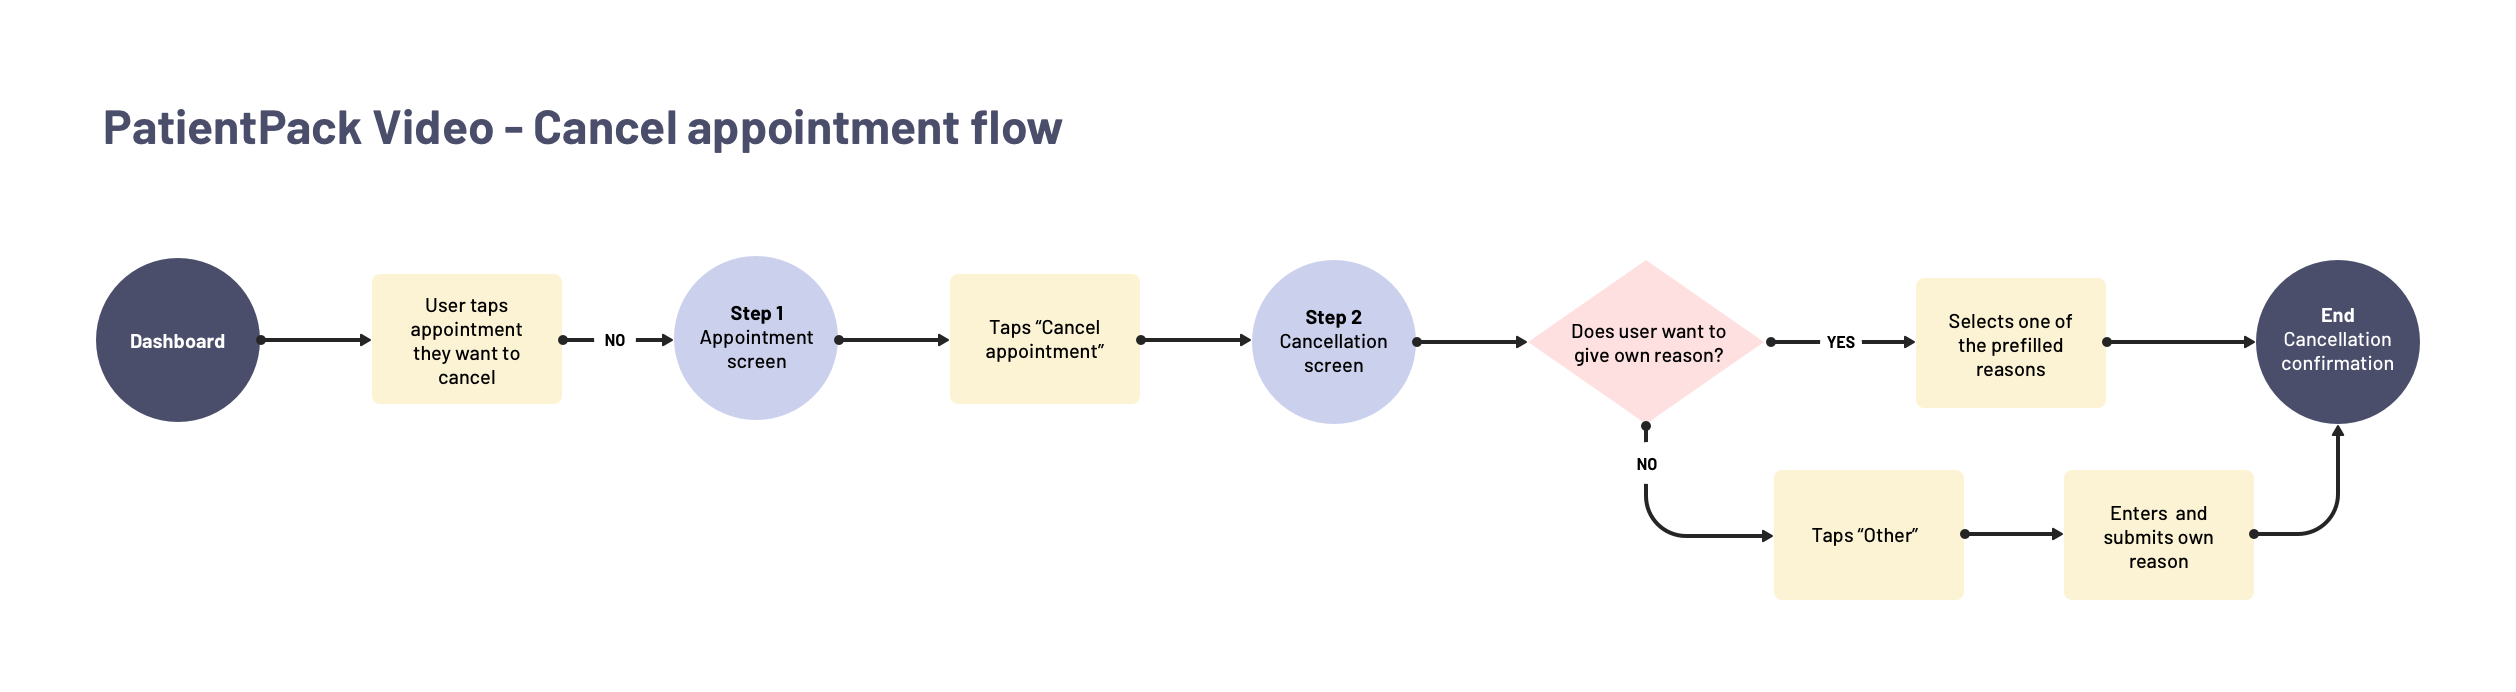 PatientPack Video - Appointment cancellation flow. One of many user flows outlined during this stage.